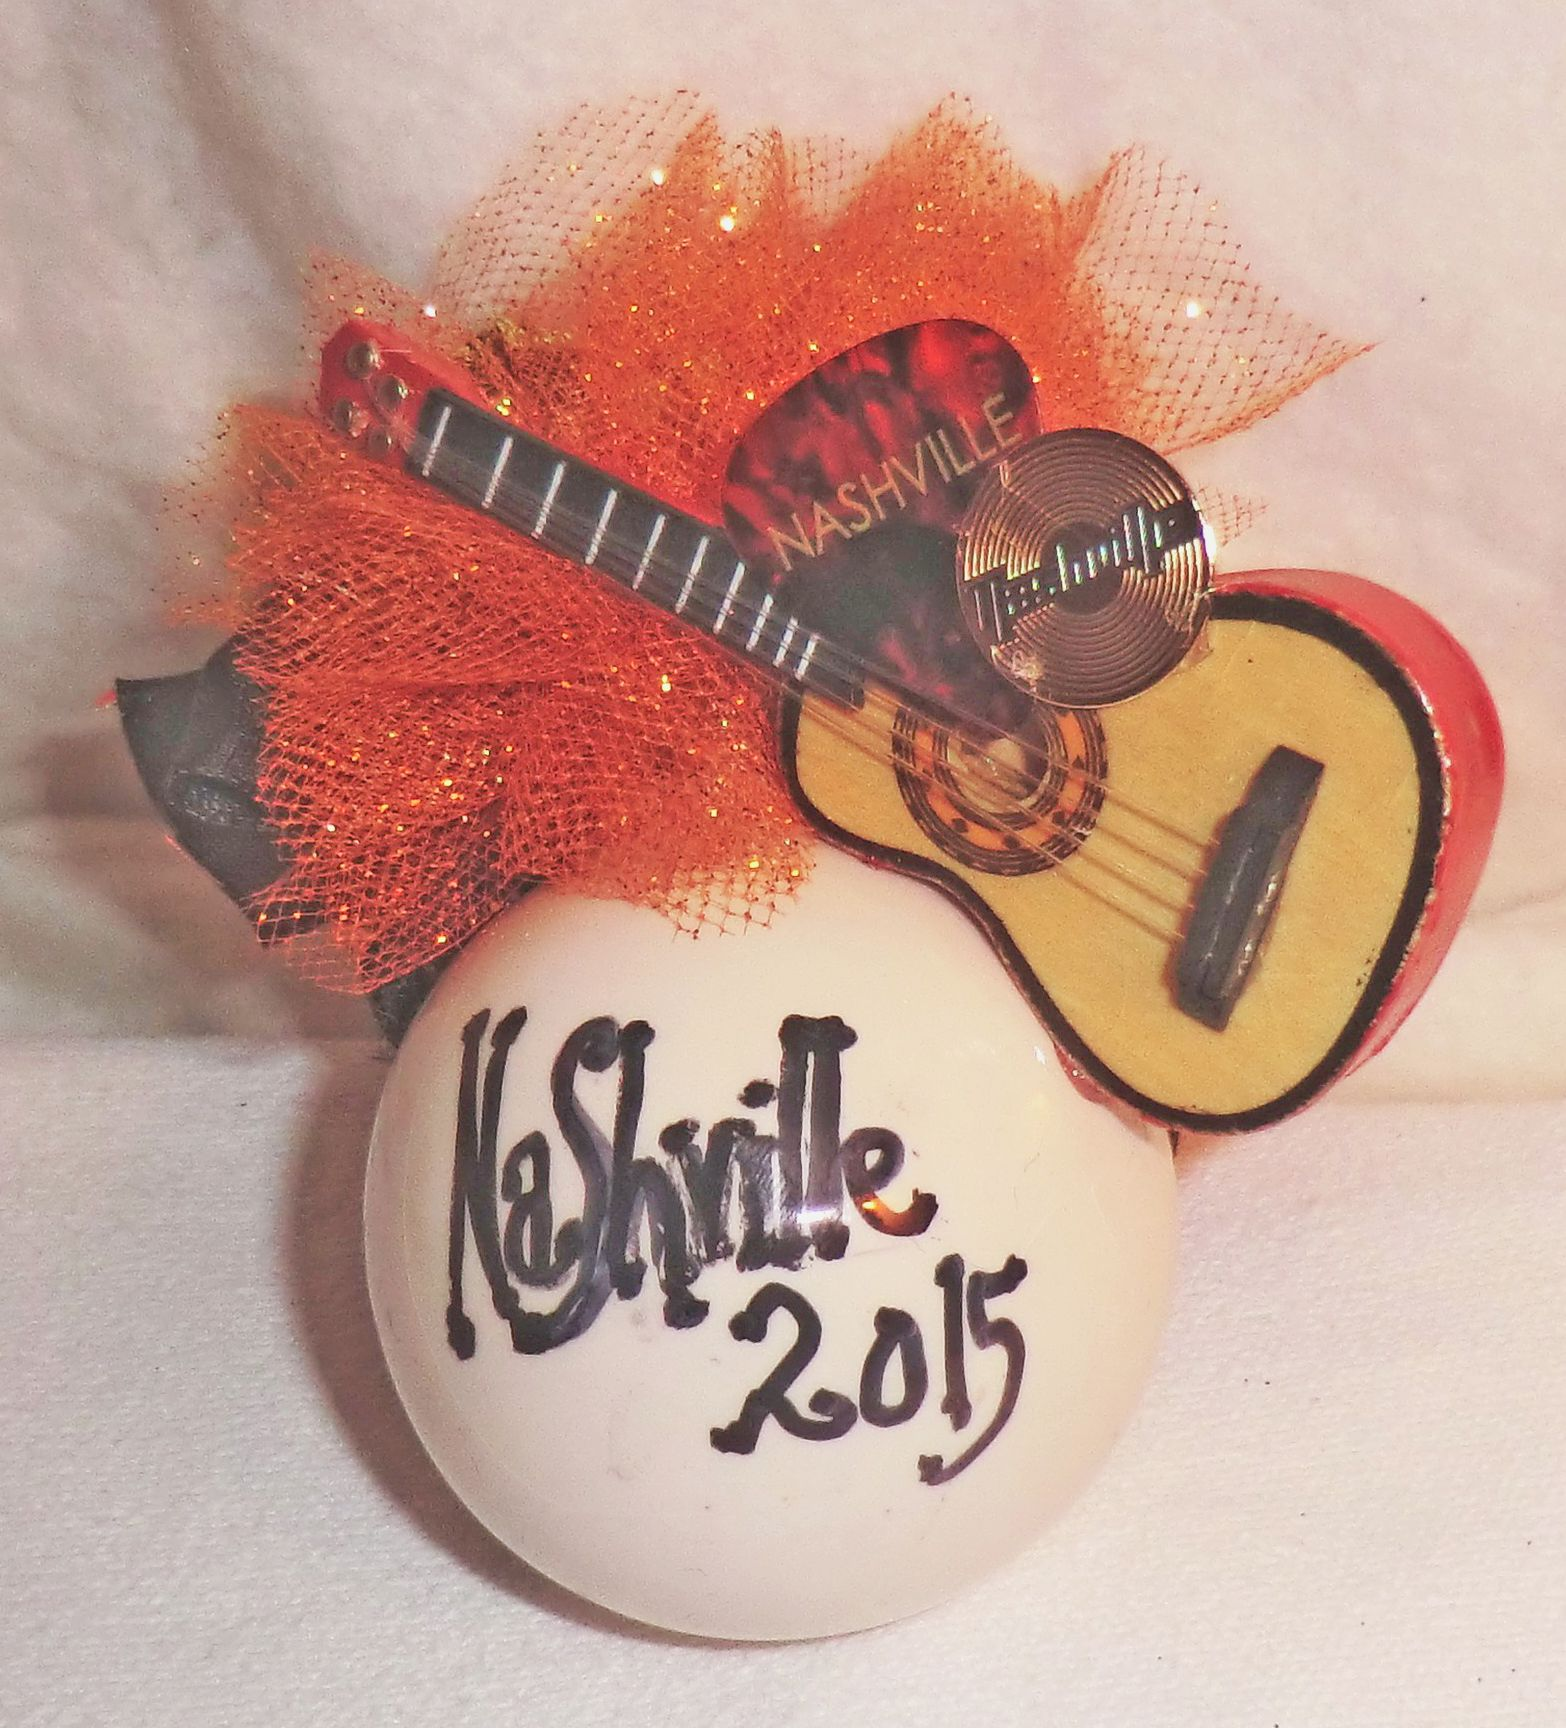 Nashville 2015 Christmas Ornament with Natural color trimmed in